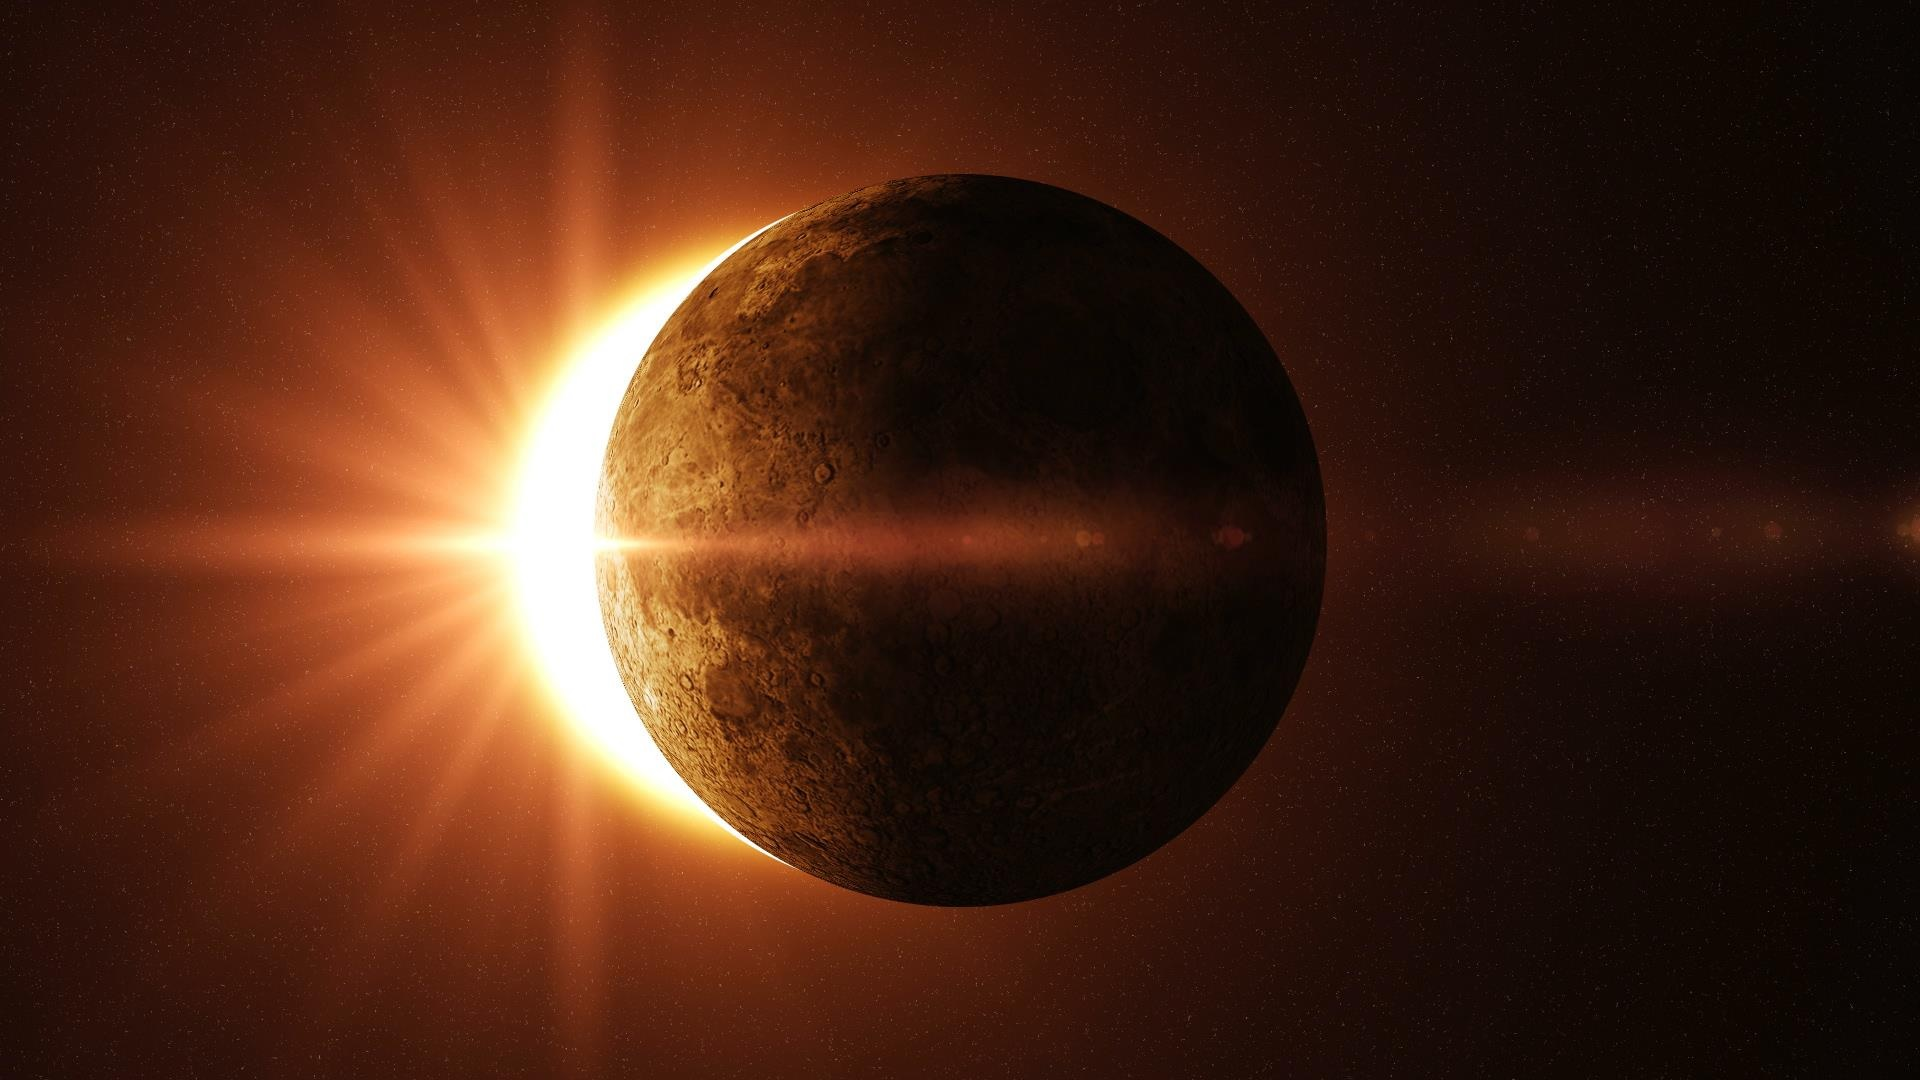 DR. SCHMIDT SHARED SOME GREAT ADVICE WITH PORT CITY DAILY ABOUT HOW TO SAFELY VIEW THE SOLAR ECLIPSE.